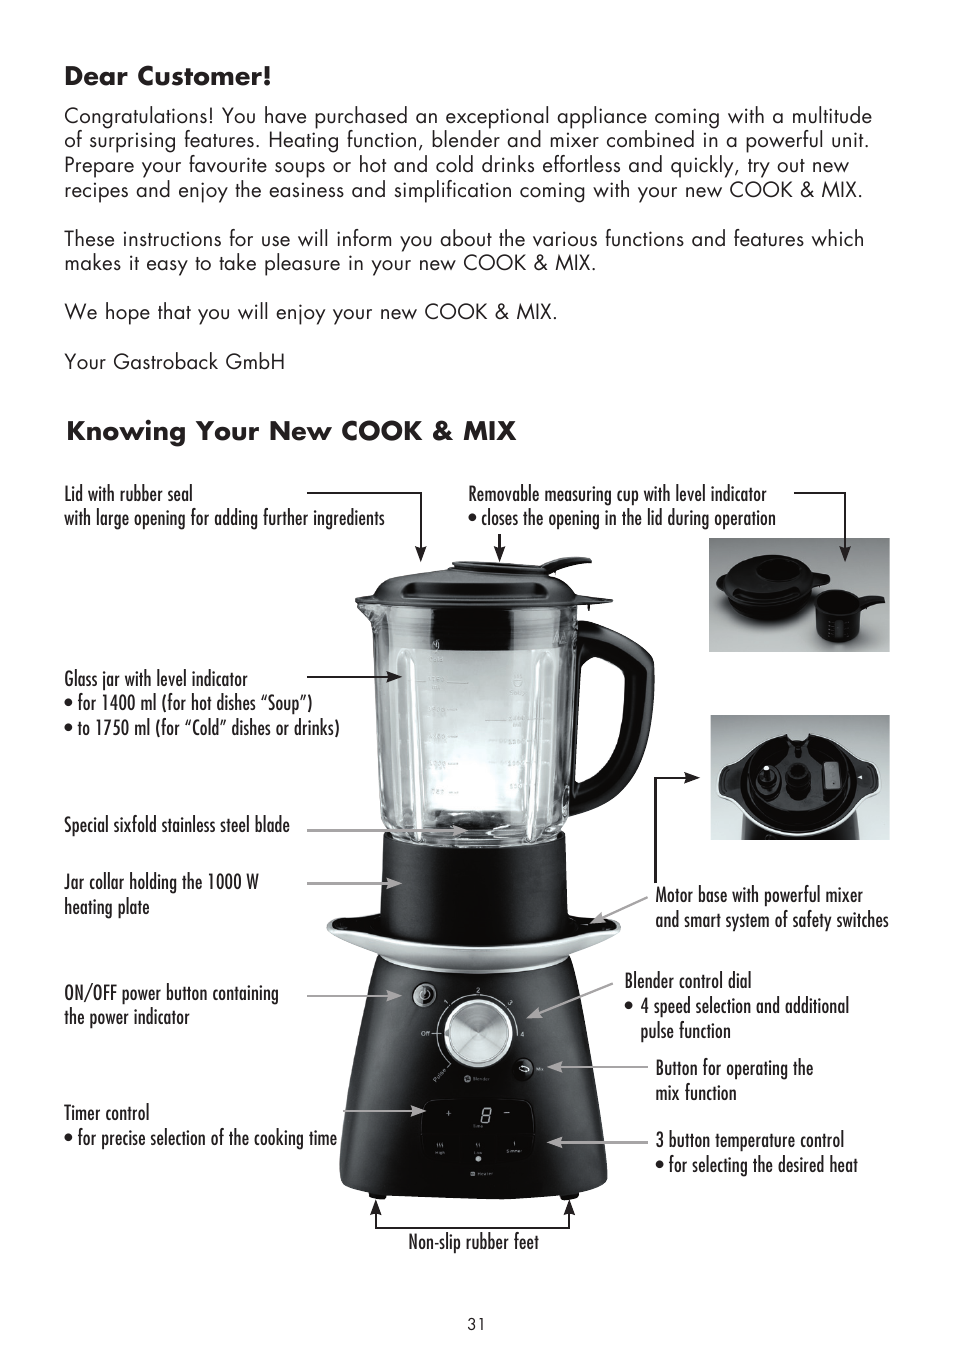 Dear customer, Knowing your new cook & mix | Gastroback 41019 - Cook & Mix  User Manual | Page 3 / 28